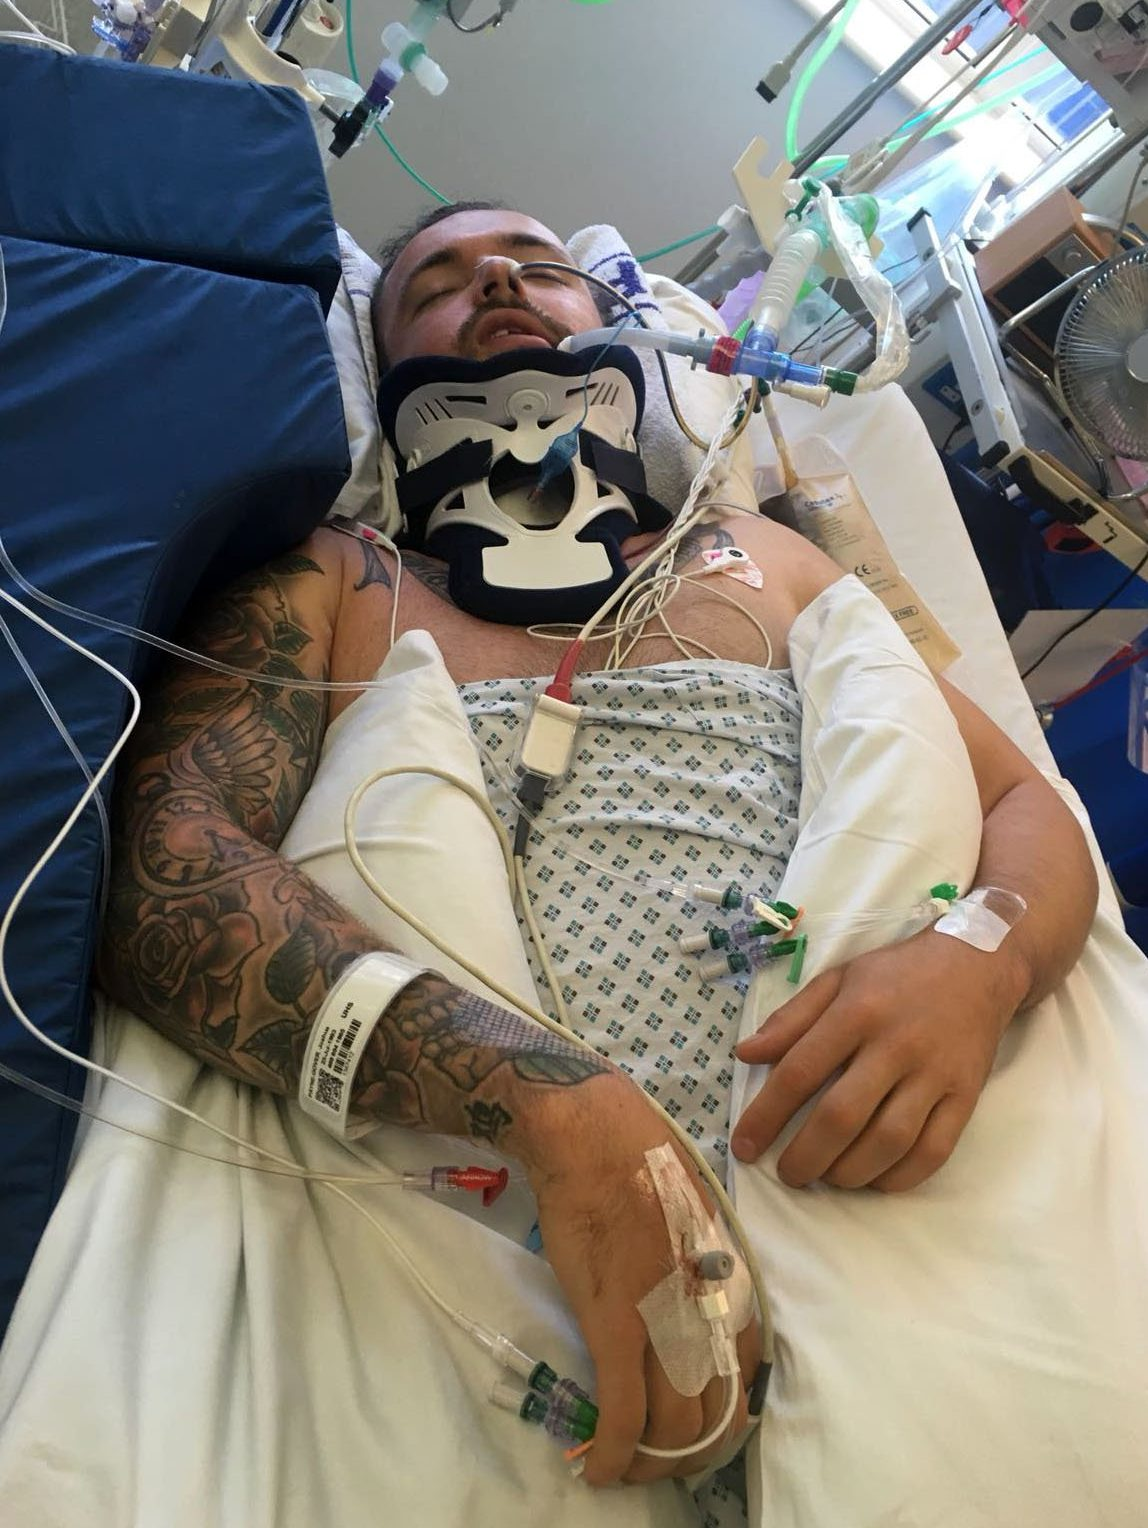 BNPS.co.uk (01202 558833)?Pic: JoshPayneGover/BNPS Josh now. A man who broke his neck tombstoning with friends into shallow water has spoken out about how his life has changed after doctors told him he may never walk again. Josh Payne-Gover was enjoying a day out with friends at Weymouth beach in Dorset when he shocked onlookers as he leapt from a 6ft wall into the sea and landed on his head. Josh, 25, was unconscious when he surfaced and had to be airlifted to hospital with spinal injuries on June 30. Now after three weeks in intensive care, including spending his birthday in hospital, keen sportsman Josh is determined to stay positive and hopes to one day compete in the Paralympics or Invictus Games.